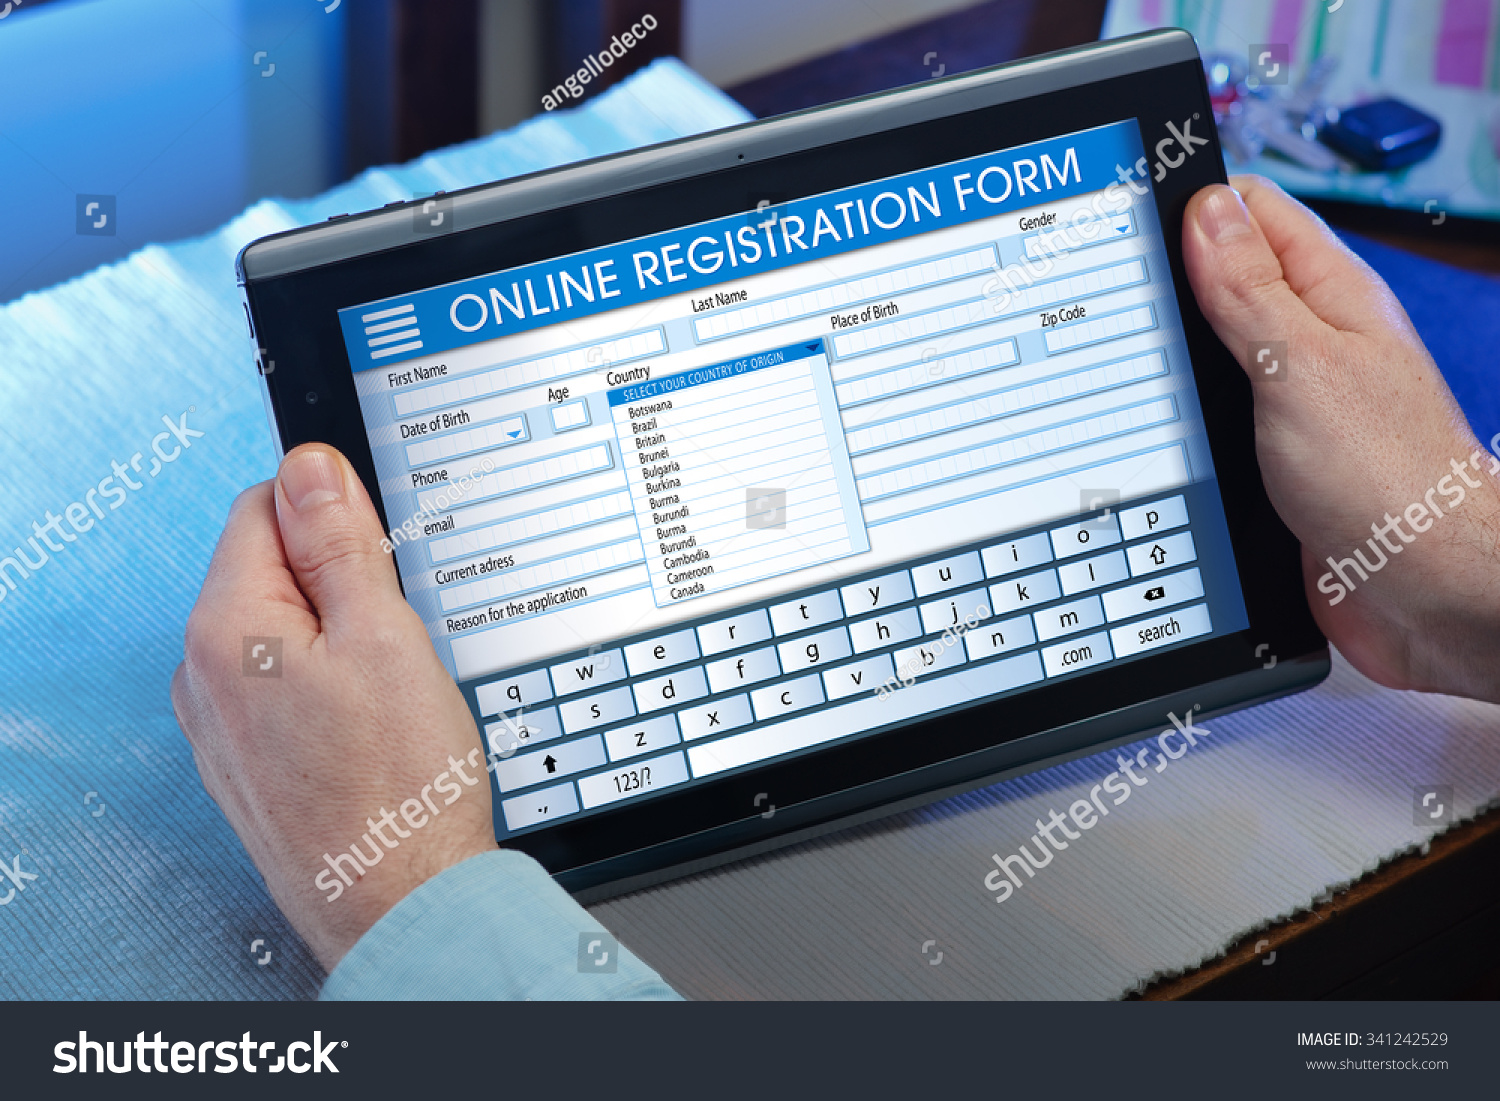 man filling out application form online stock photo  man filling out an application form online his digital tablet man at home looking